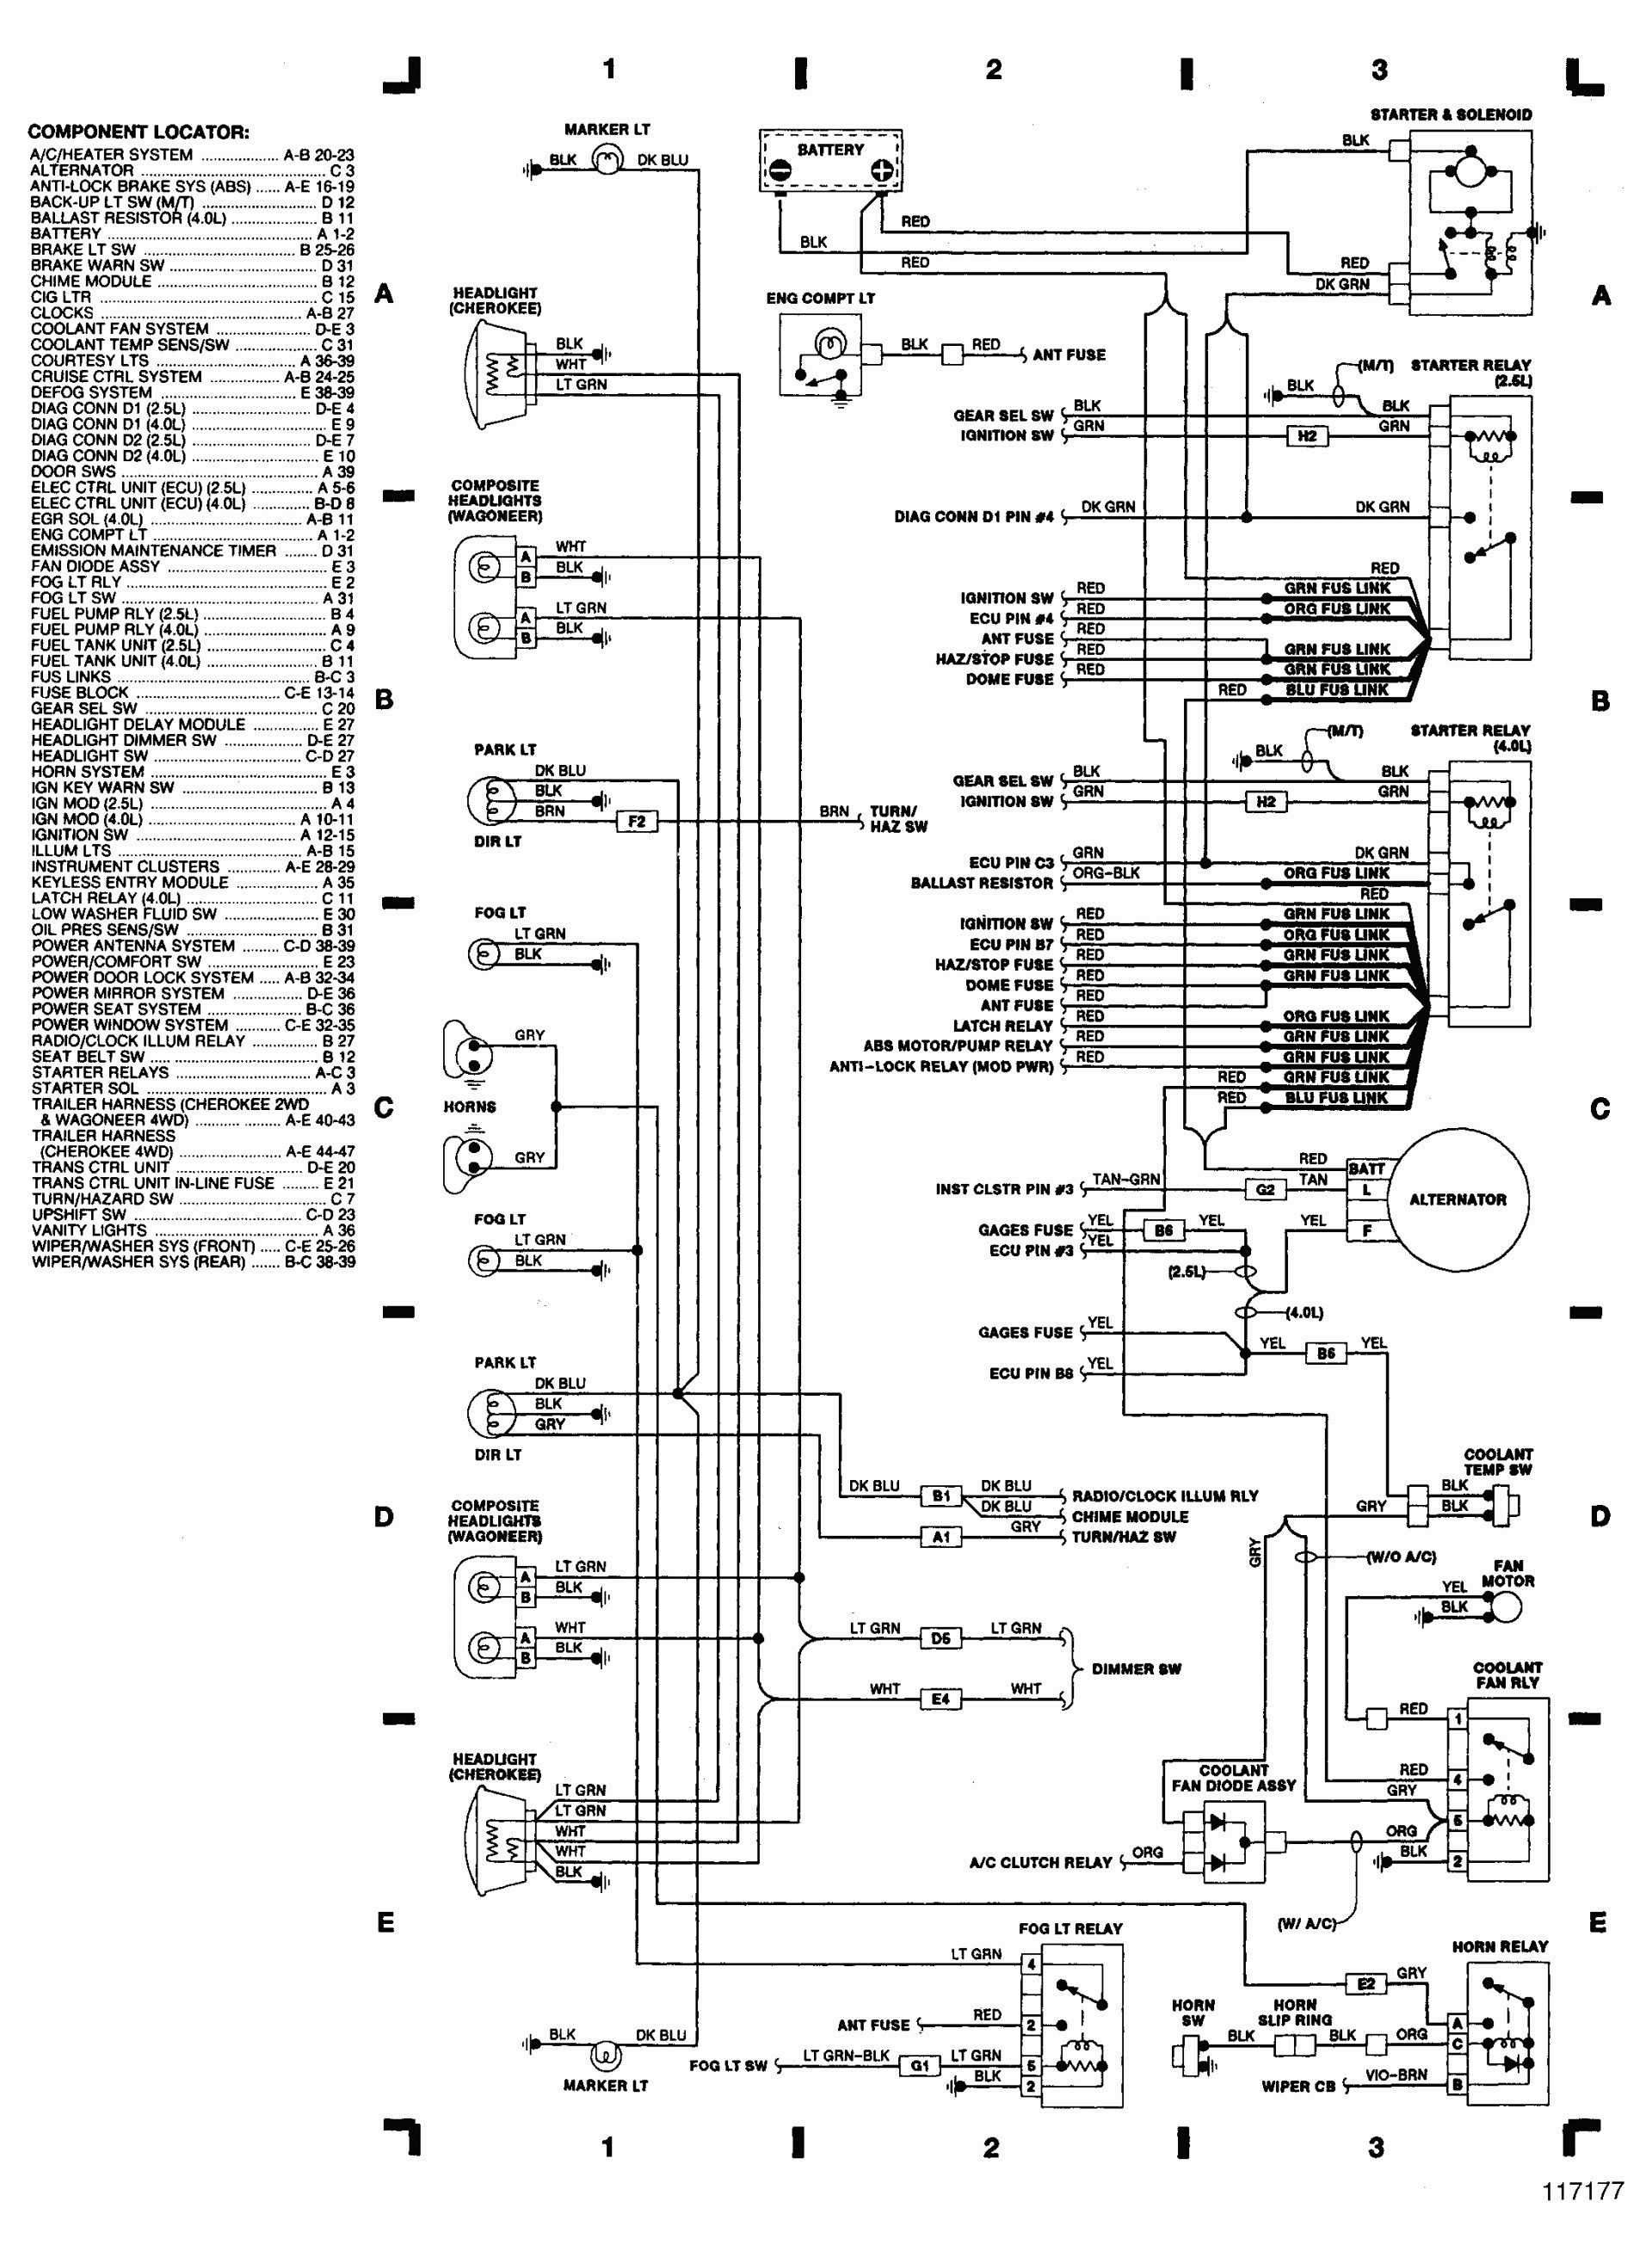 John Deere Dimmer Switch Wiring Diagram